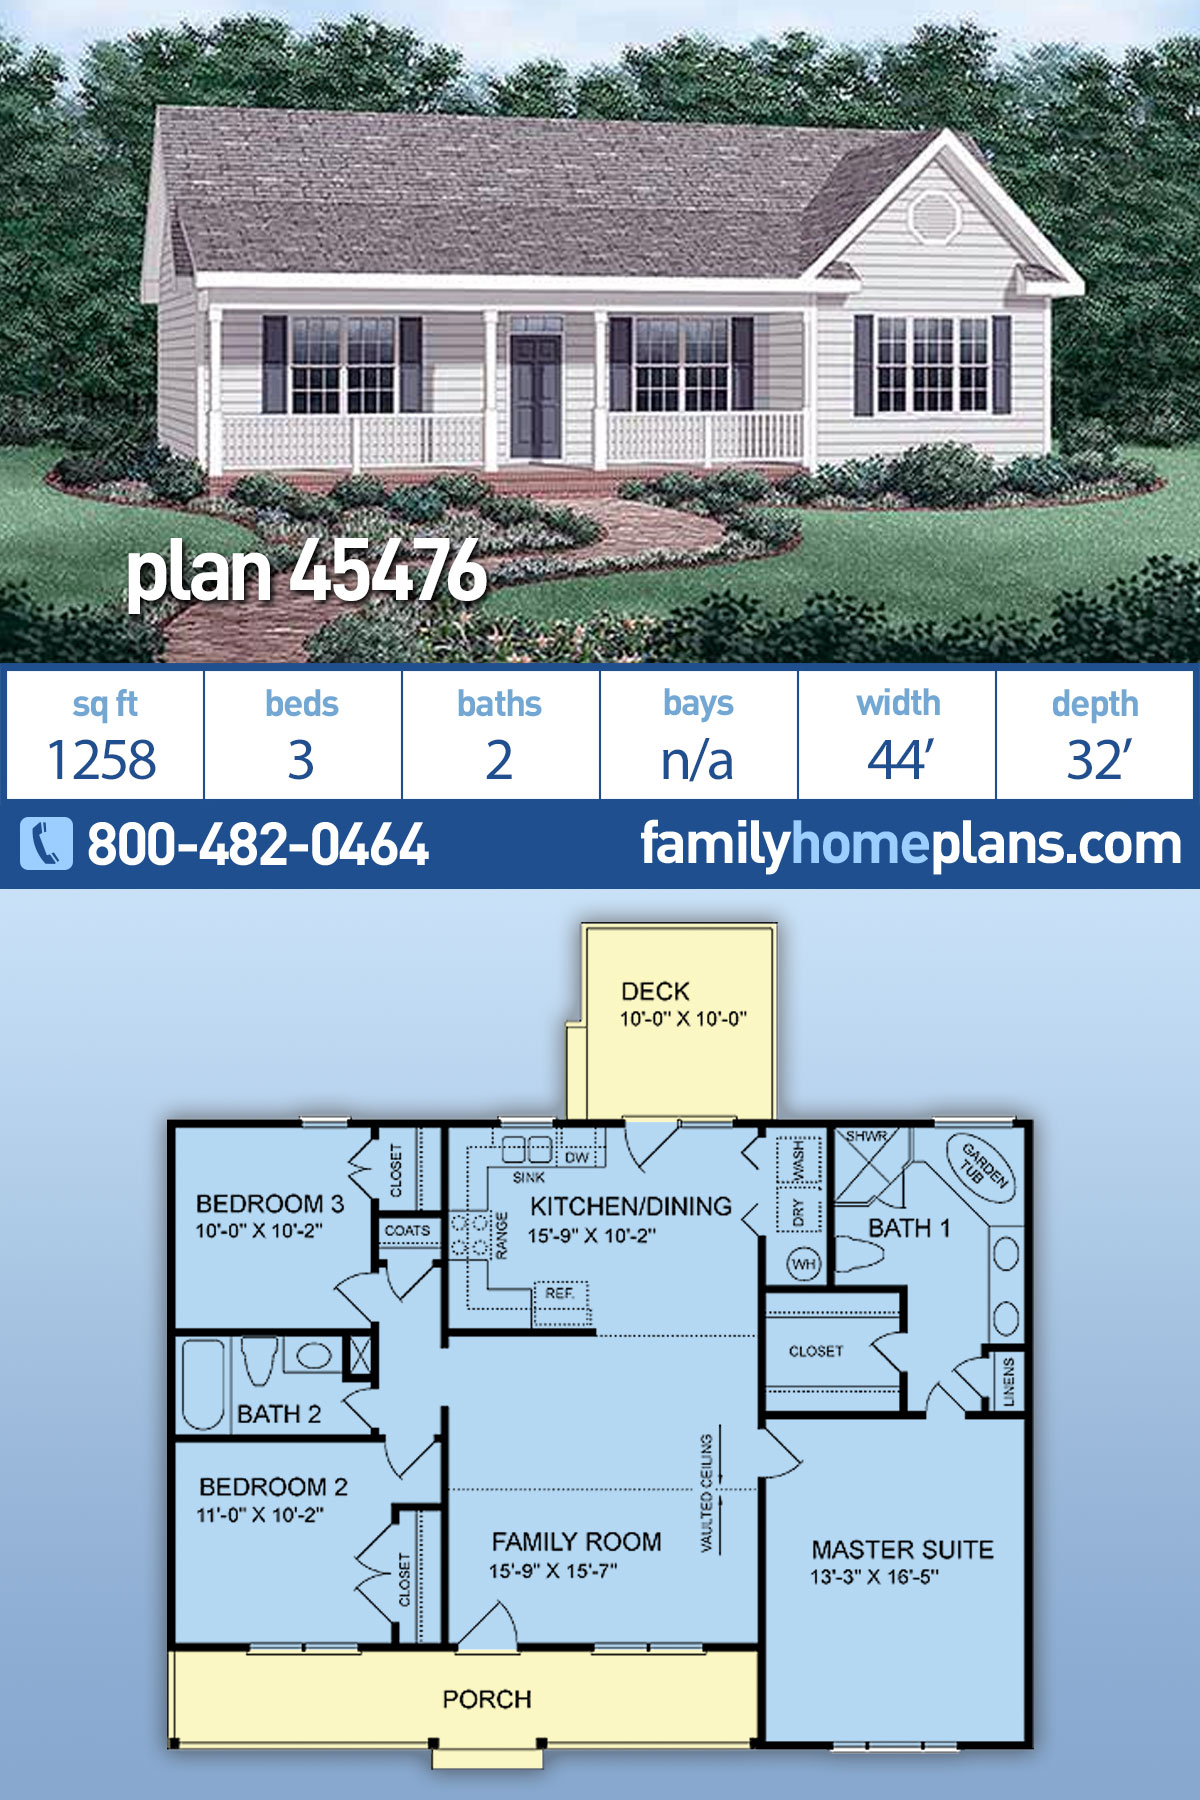 Country, Ranch, Traditional House Plan 45476 with 3 Beds, 2 Baths